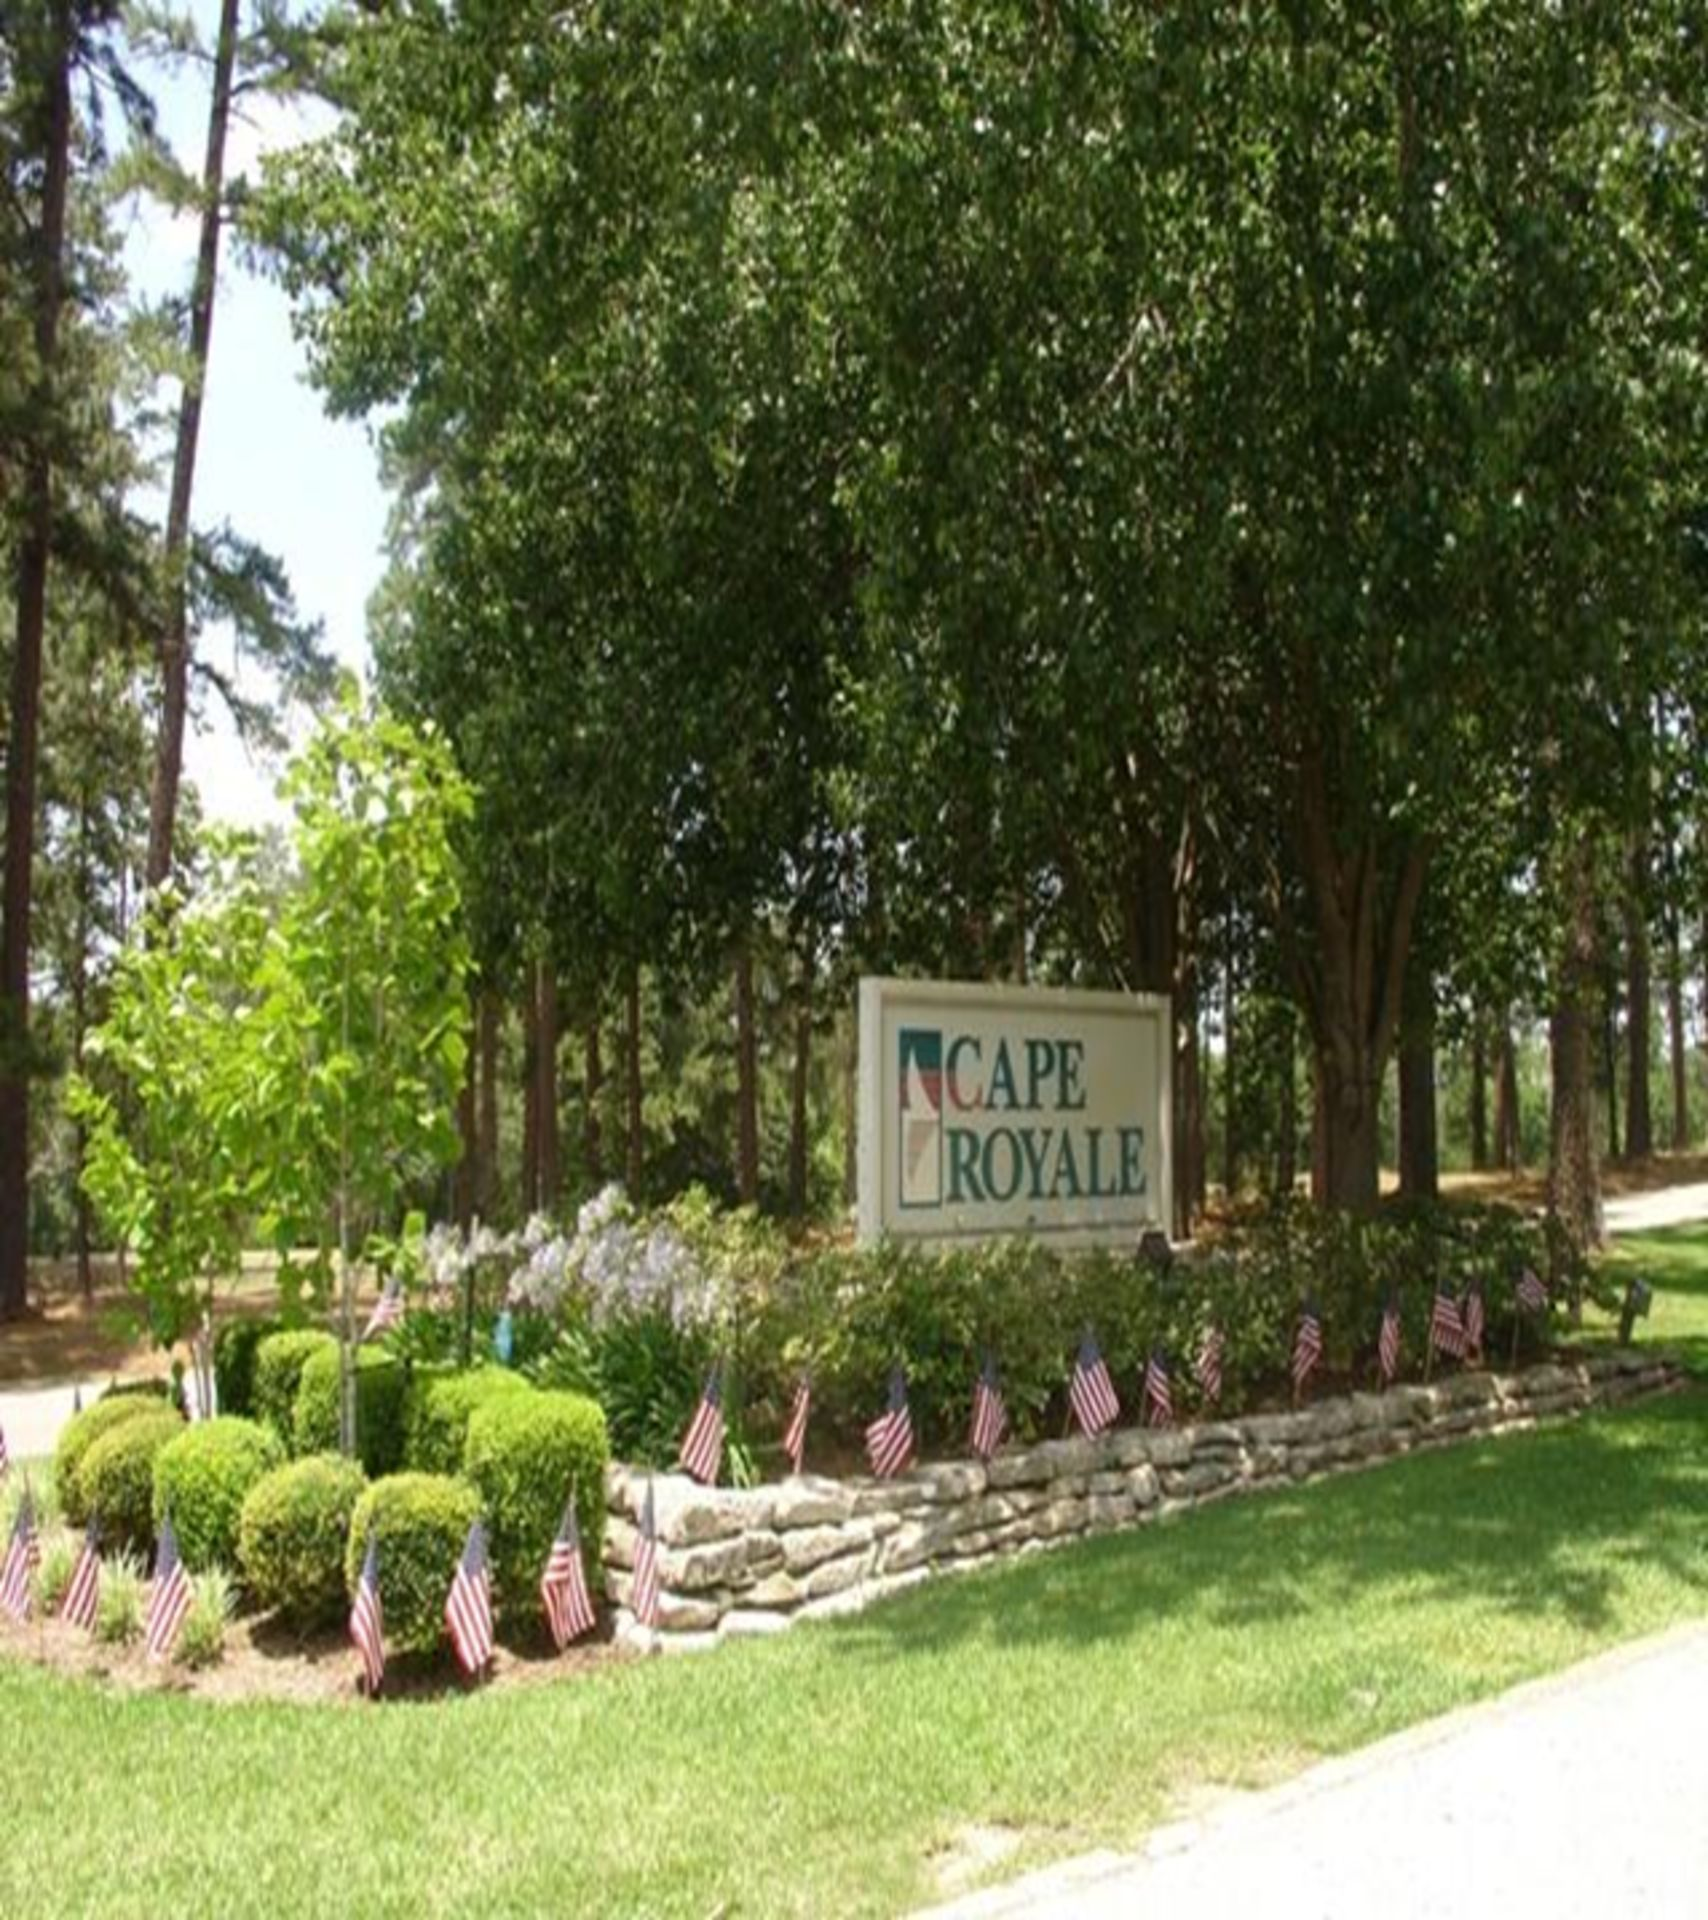 Families Galore in Beautiful Cape Royale on Lake Livingston, Texas! - Image 6 of 6